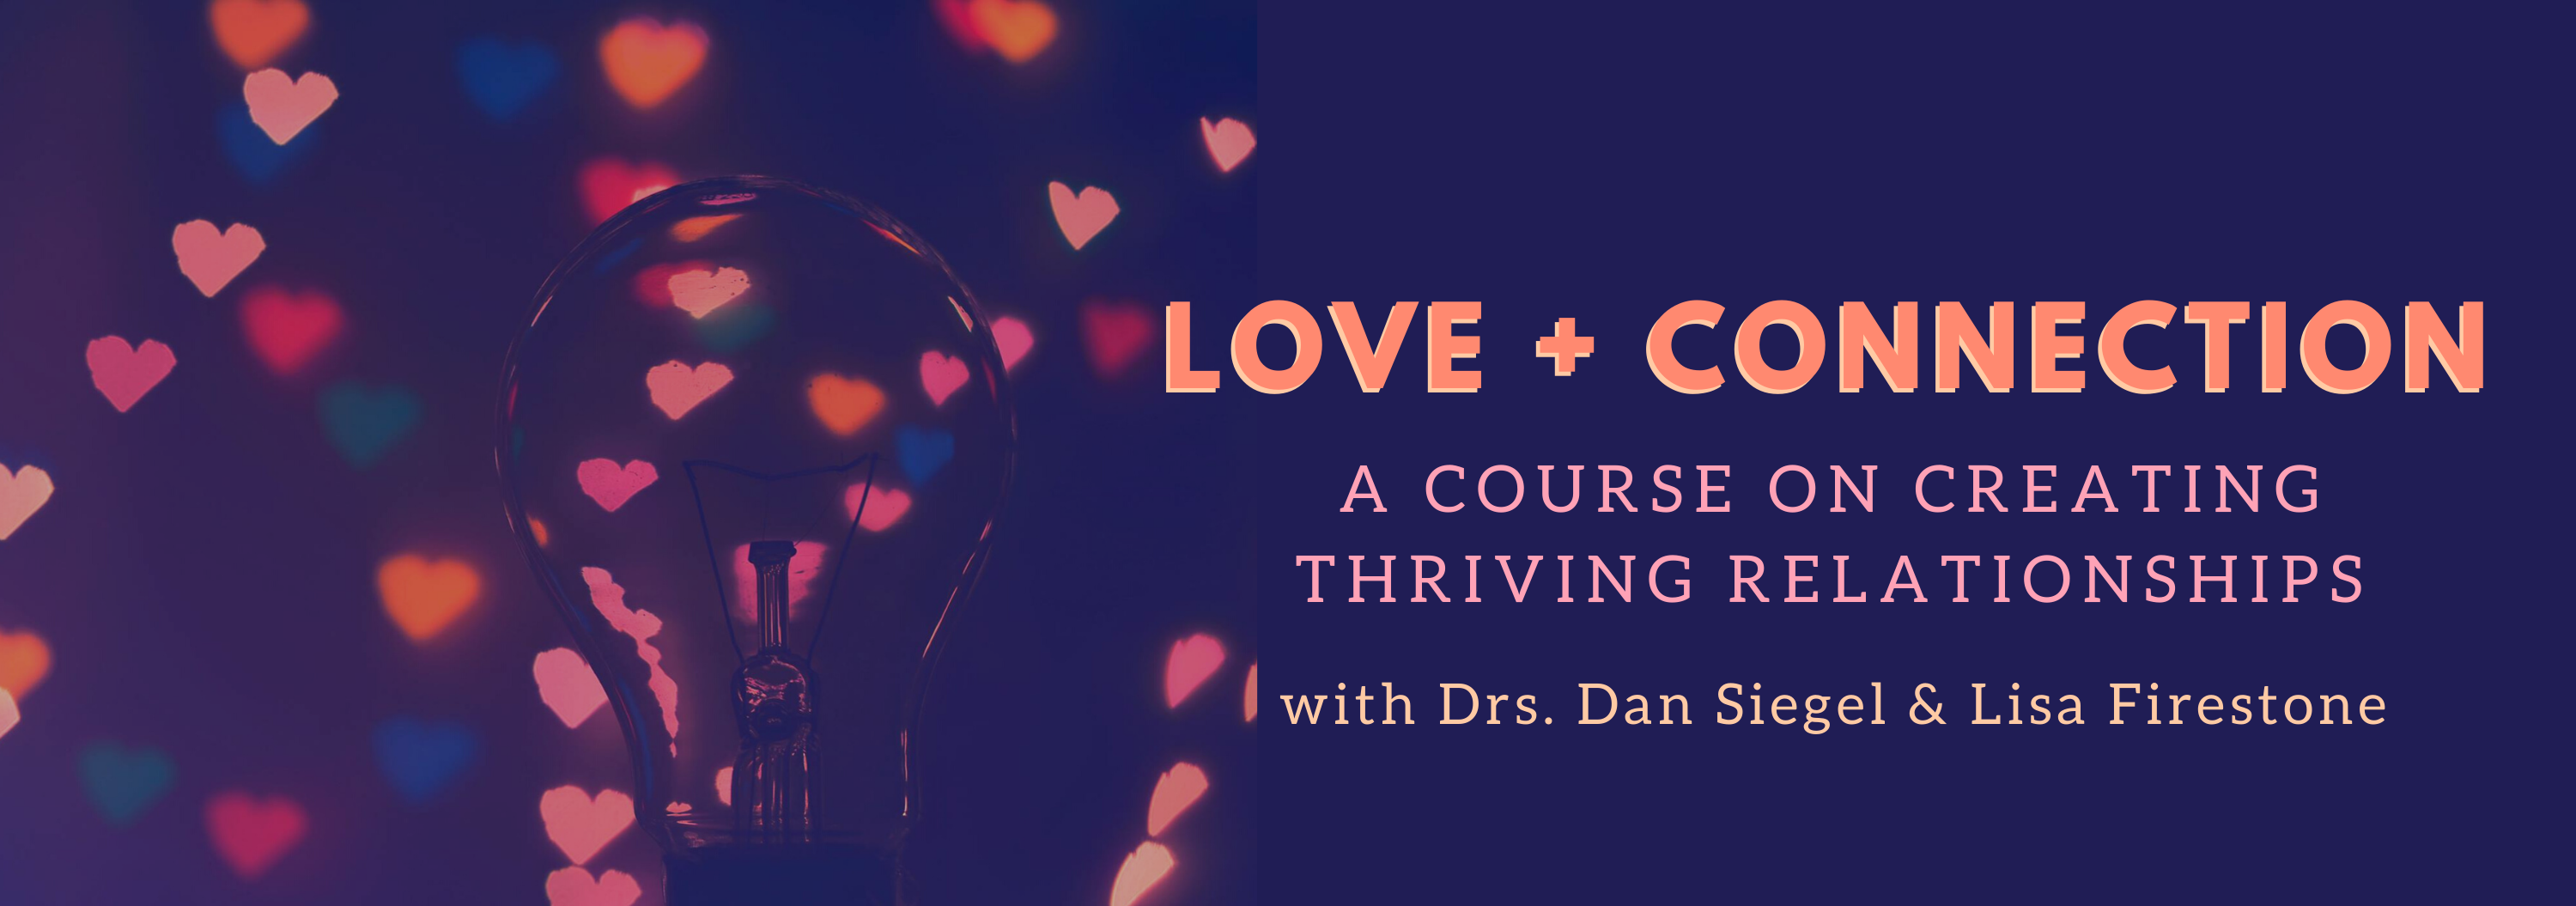 love + connection ecourse dan siegel lisa firestone